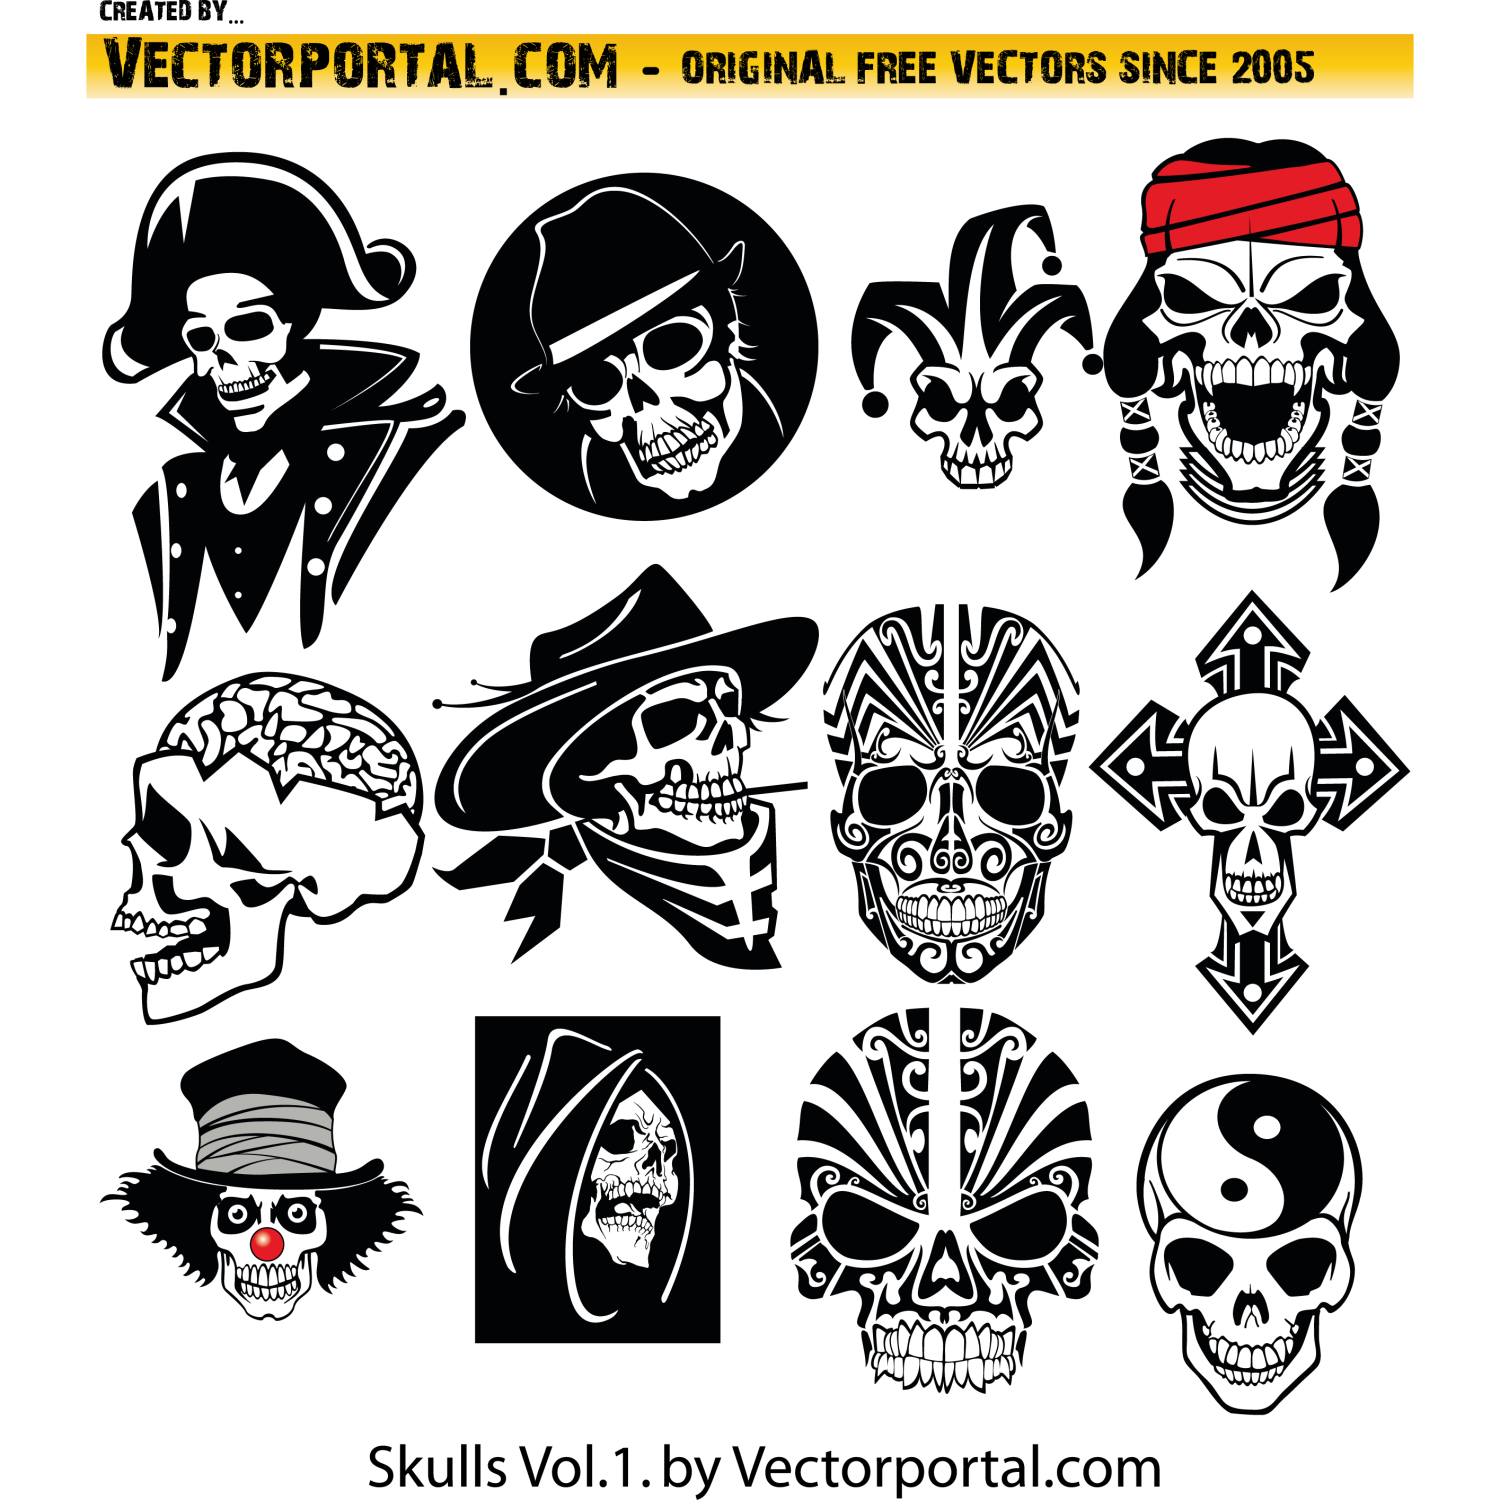 1500x1500 Free Vector Images For Commercial Use 5